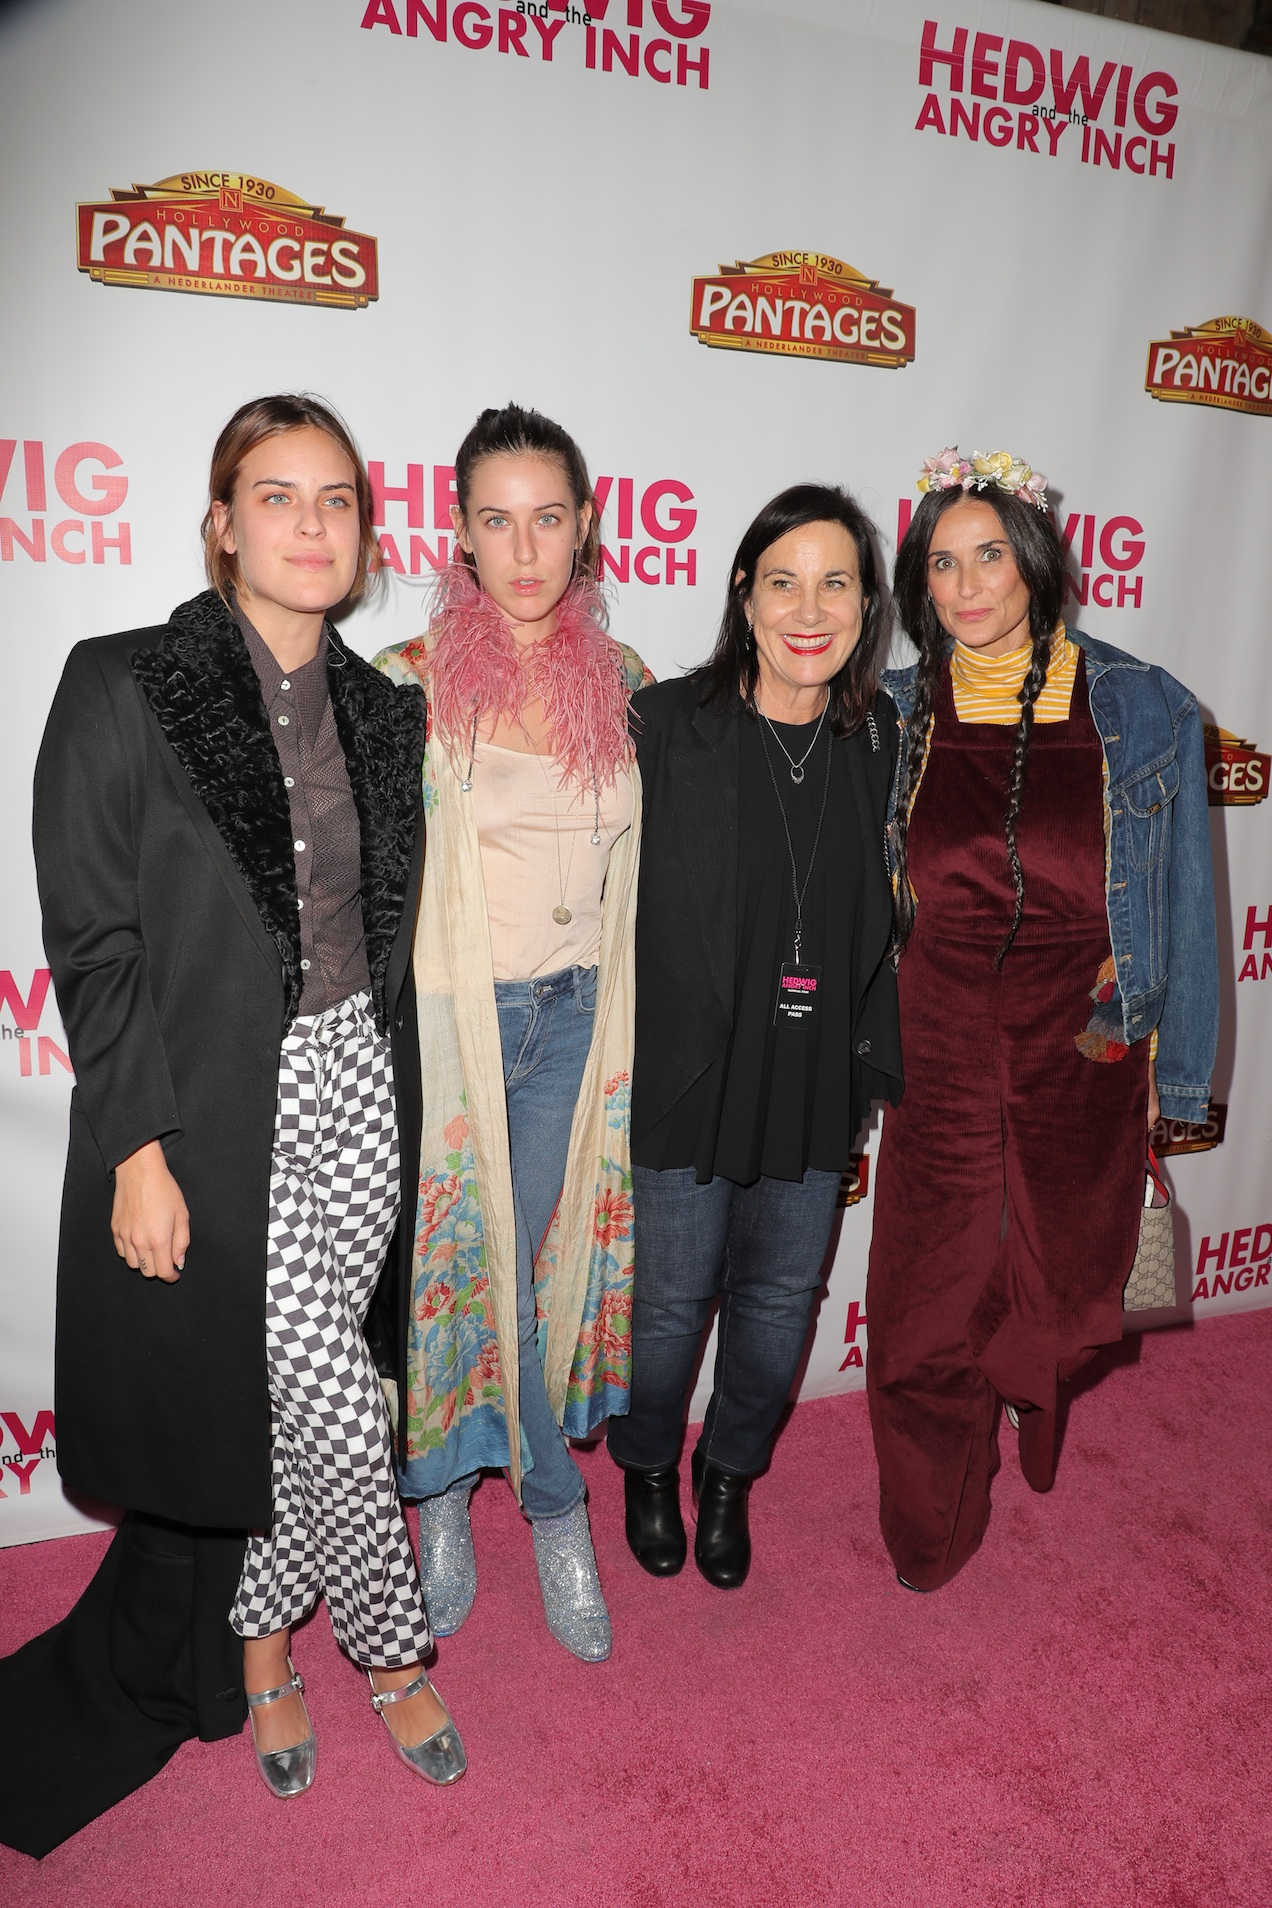 Demi Moore and friends and talent at the Pantages Hollywood opening night of Hedwig and the Angry Inch. Photo by Chelsea Lauren